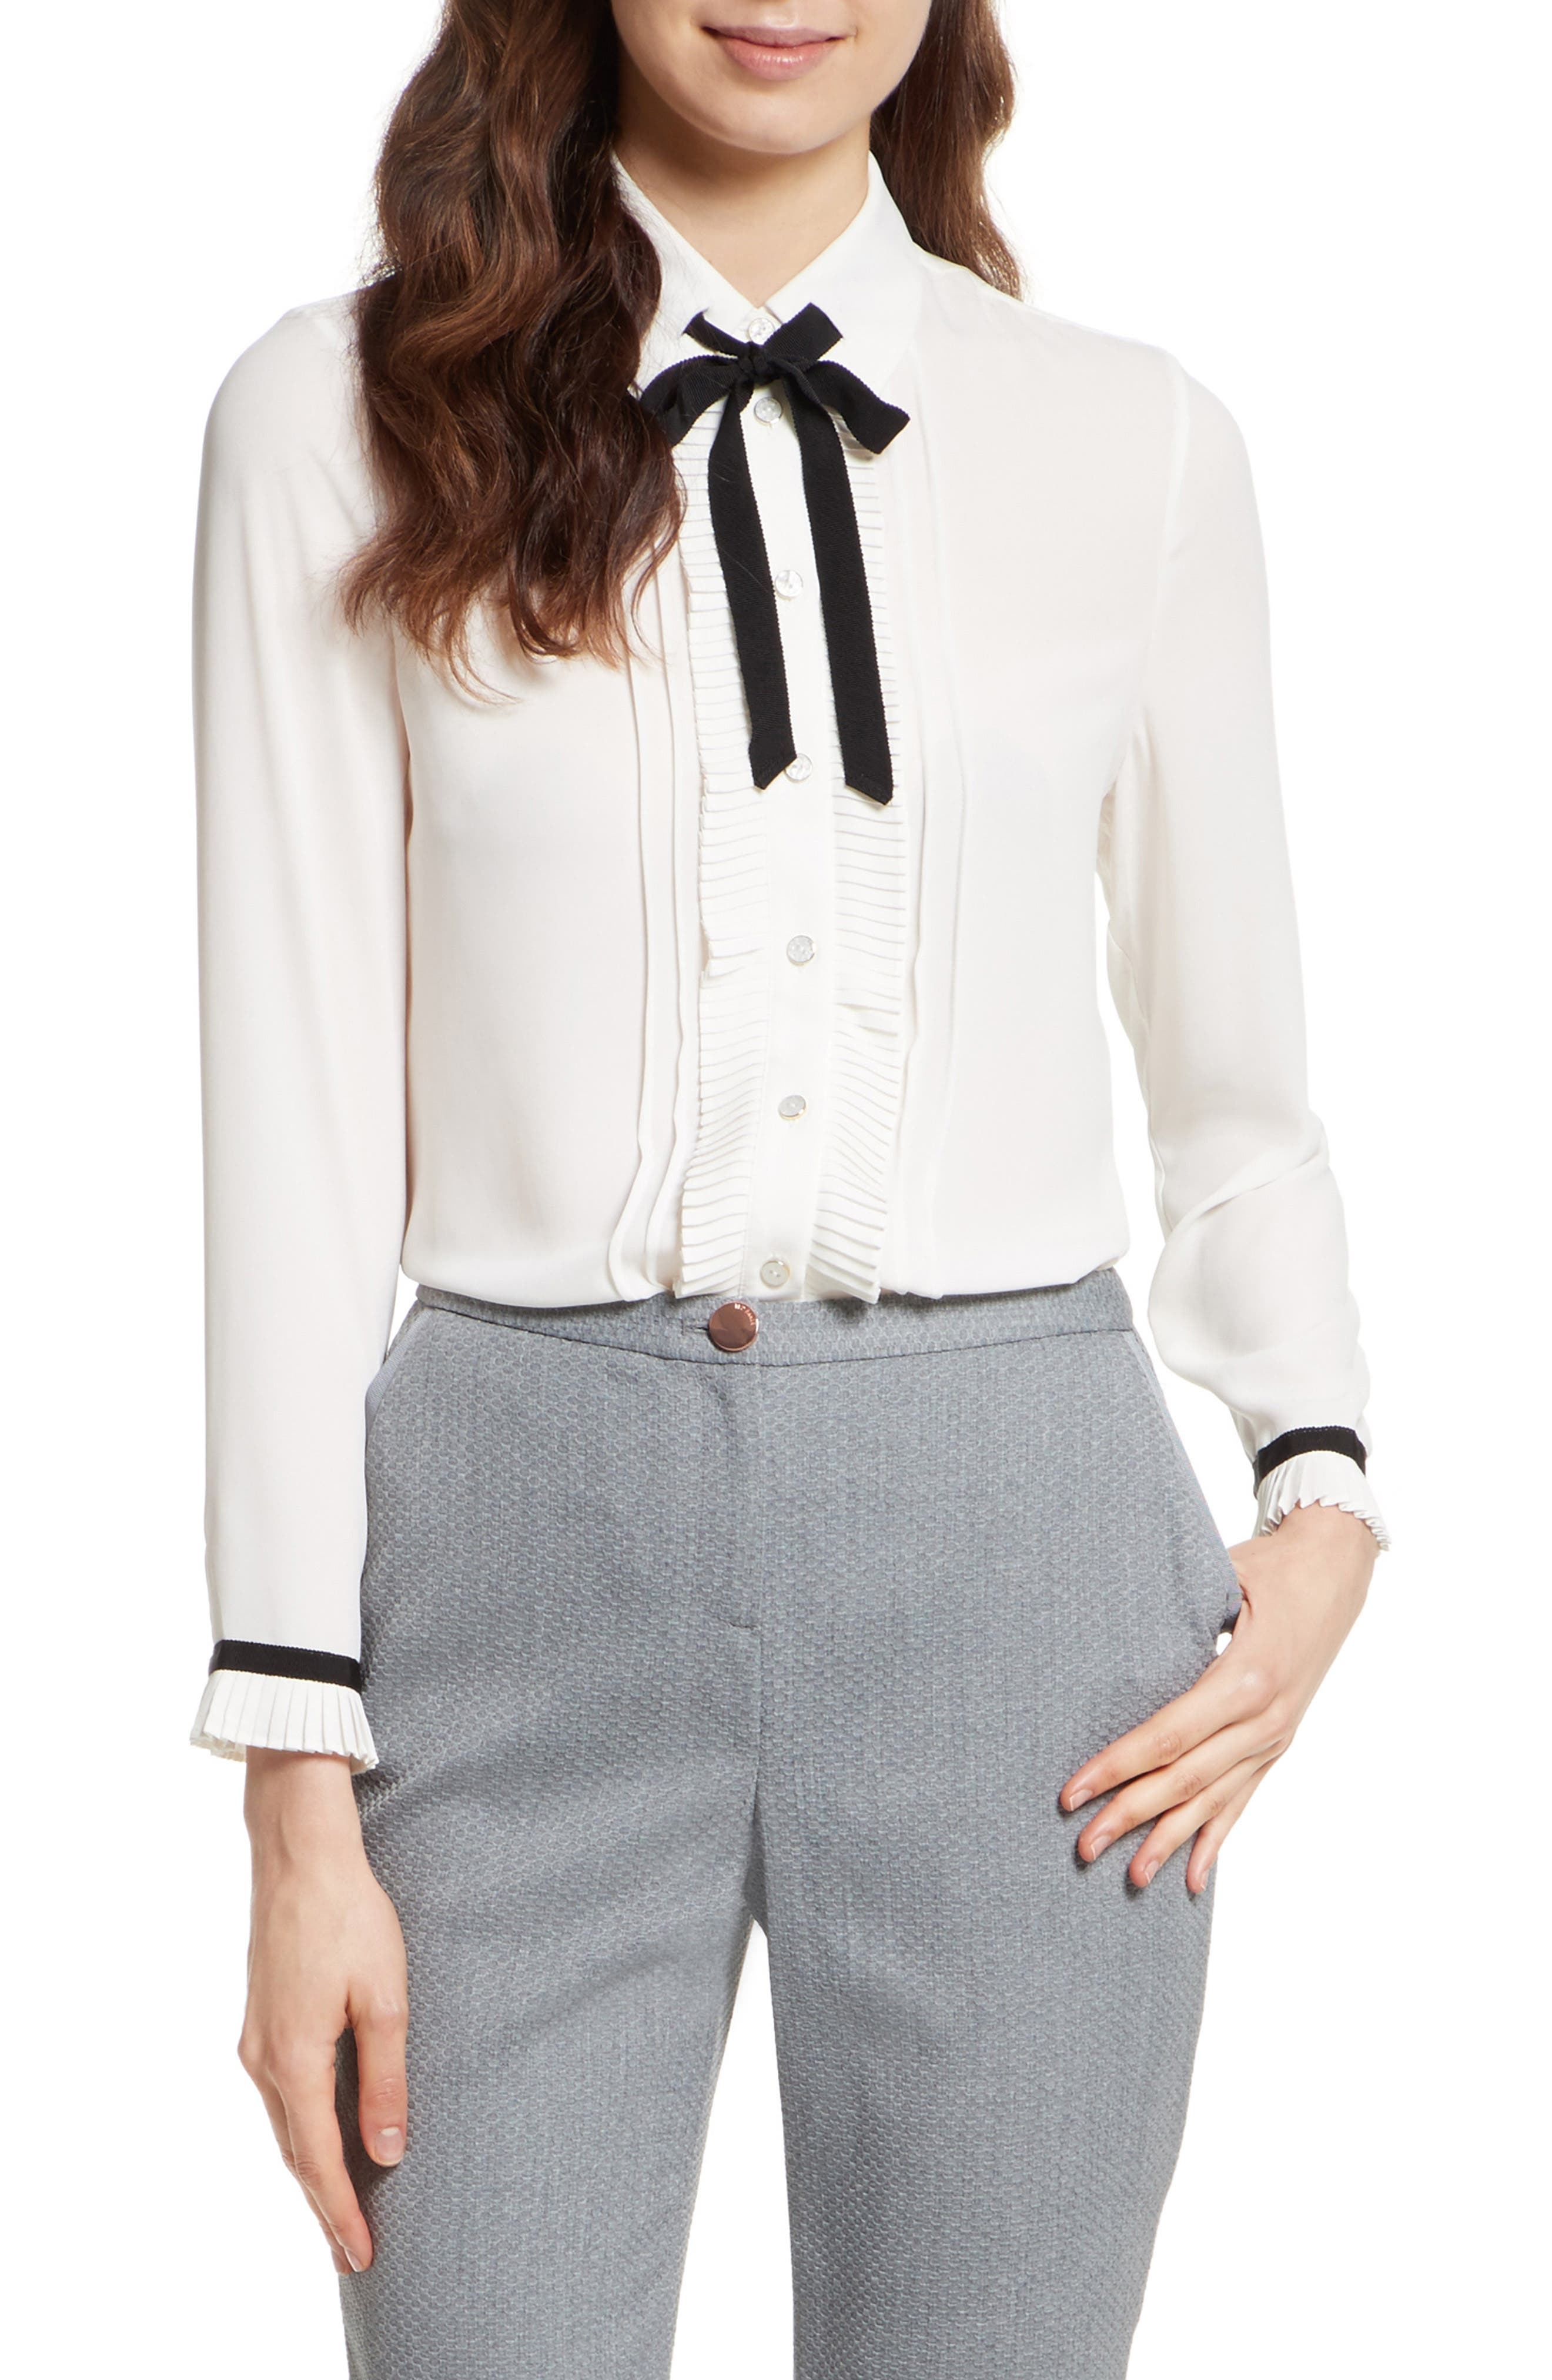 TED BAKER LONDON Pleated Frill Tie Neck Shirt, Main, color, 110